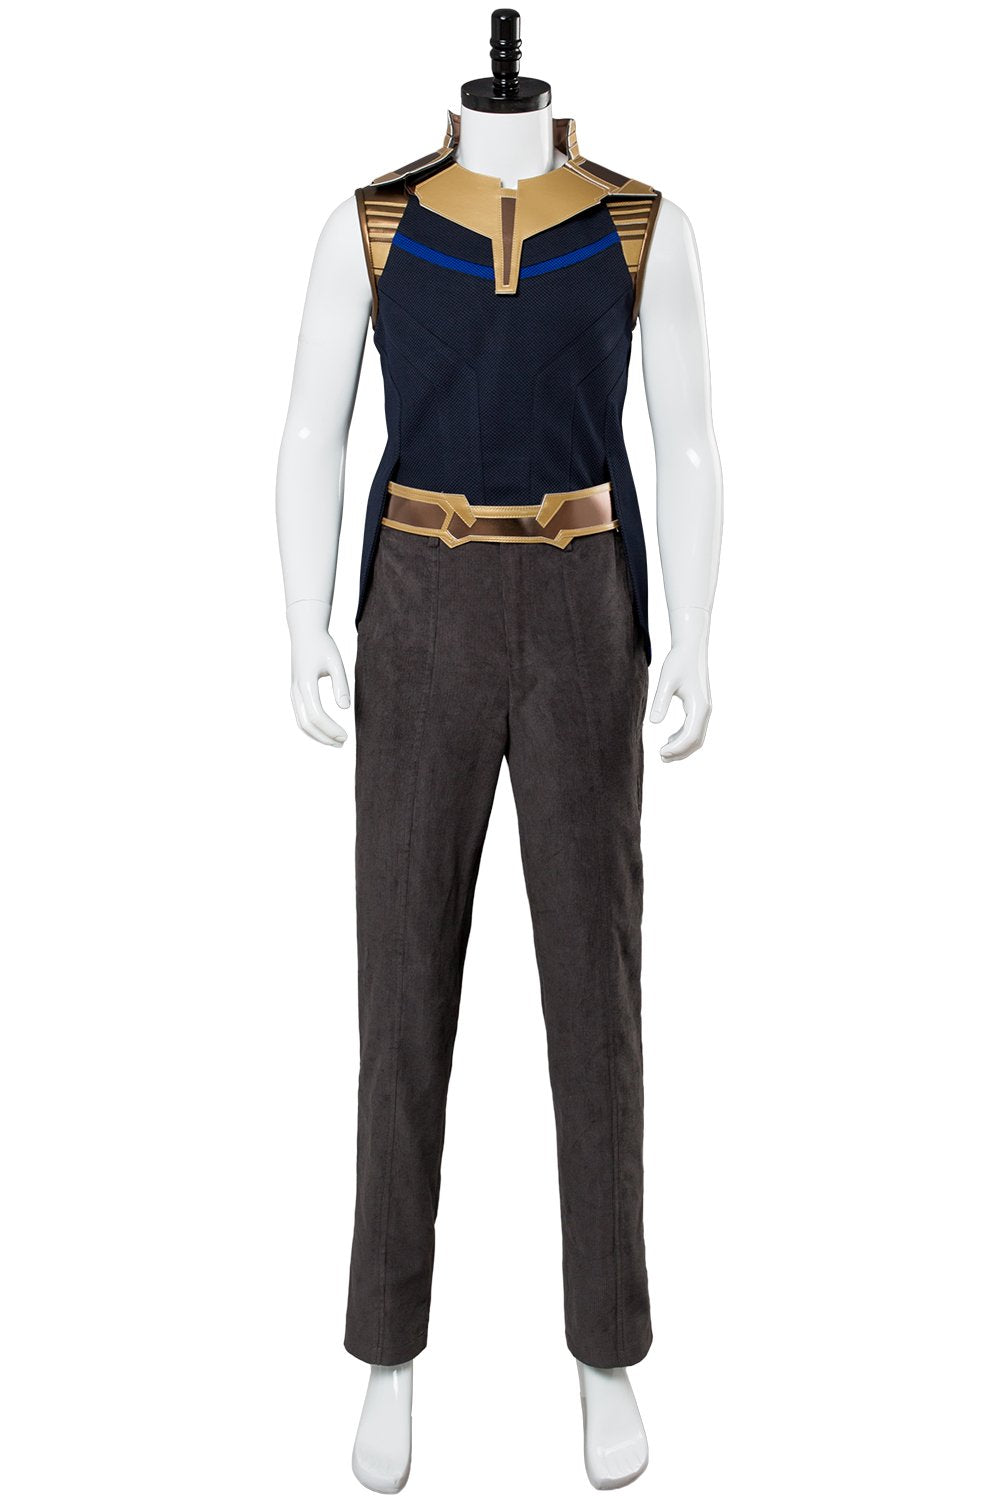 Marvel Avengers 3: Infinity War Thanos outfit cosplay Costume